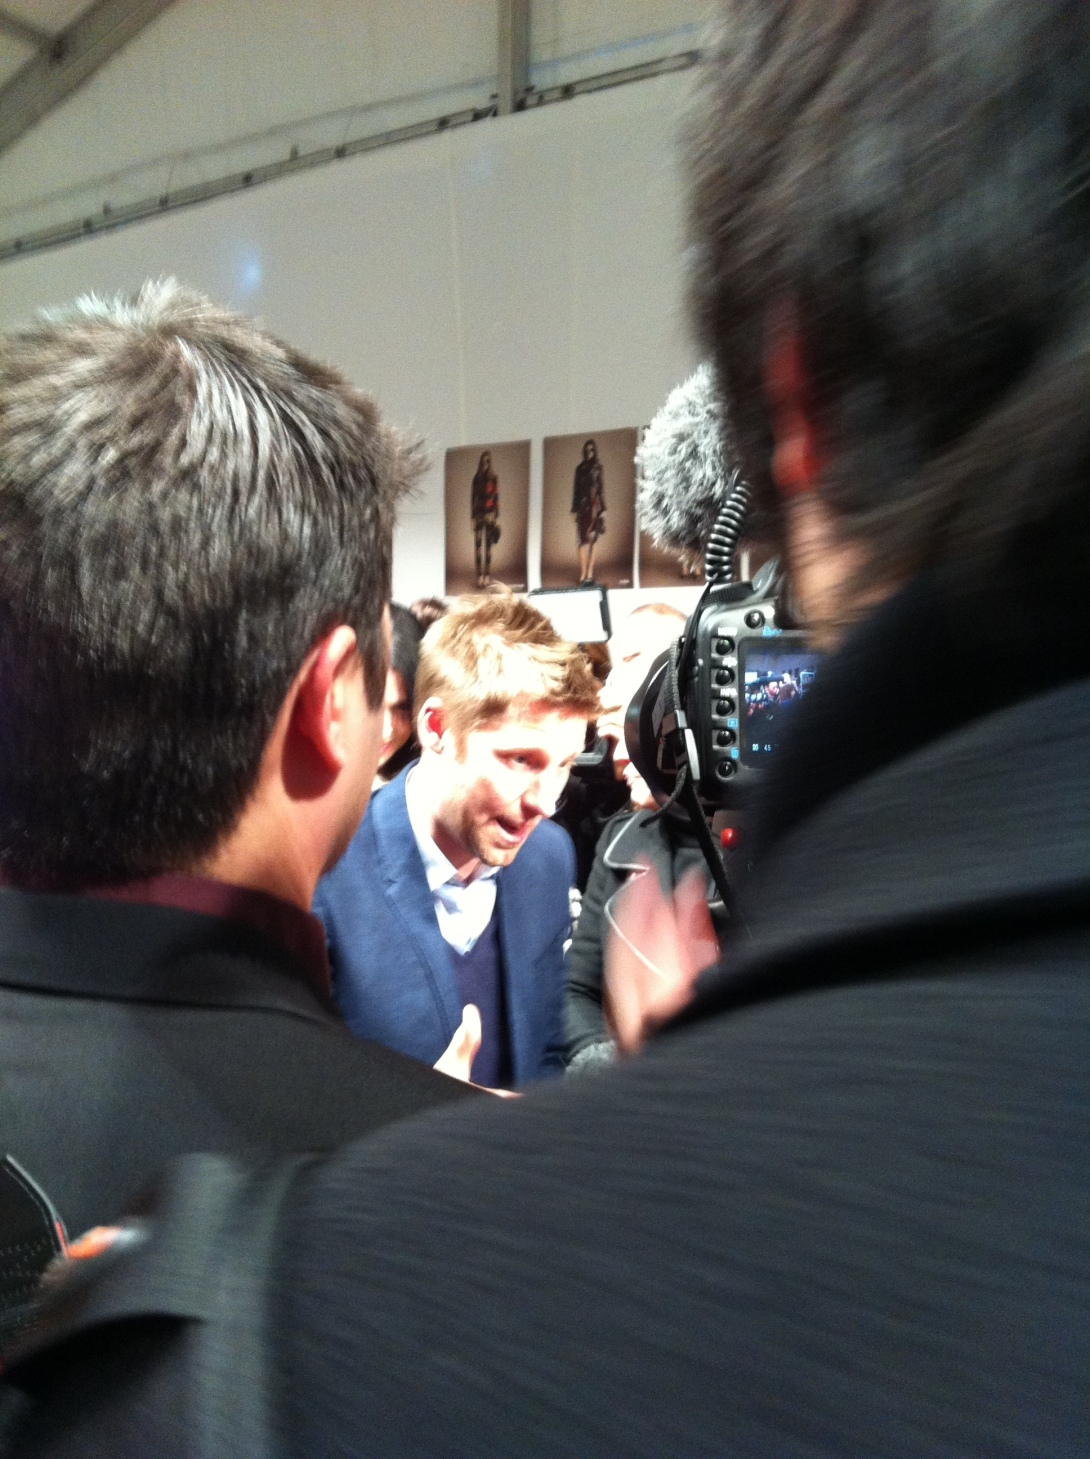 Christopher Bailey - After Burberry Prorsum AW Catwalk Show